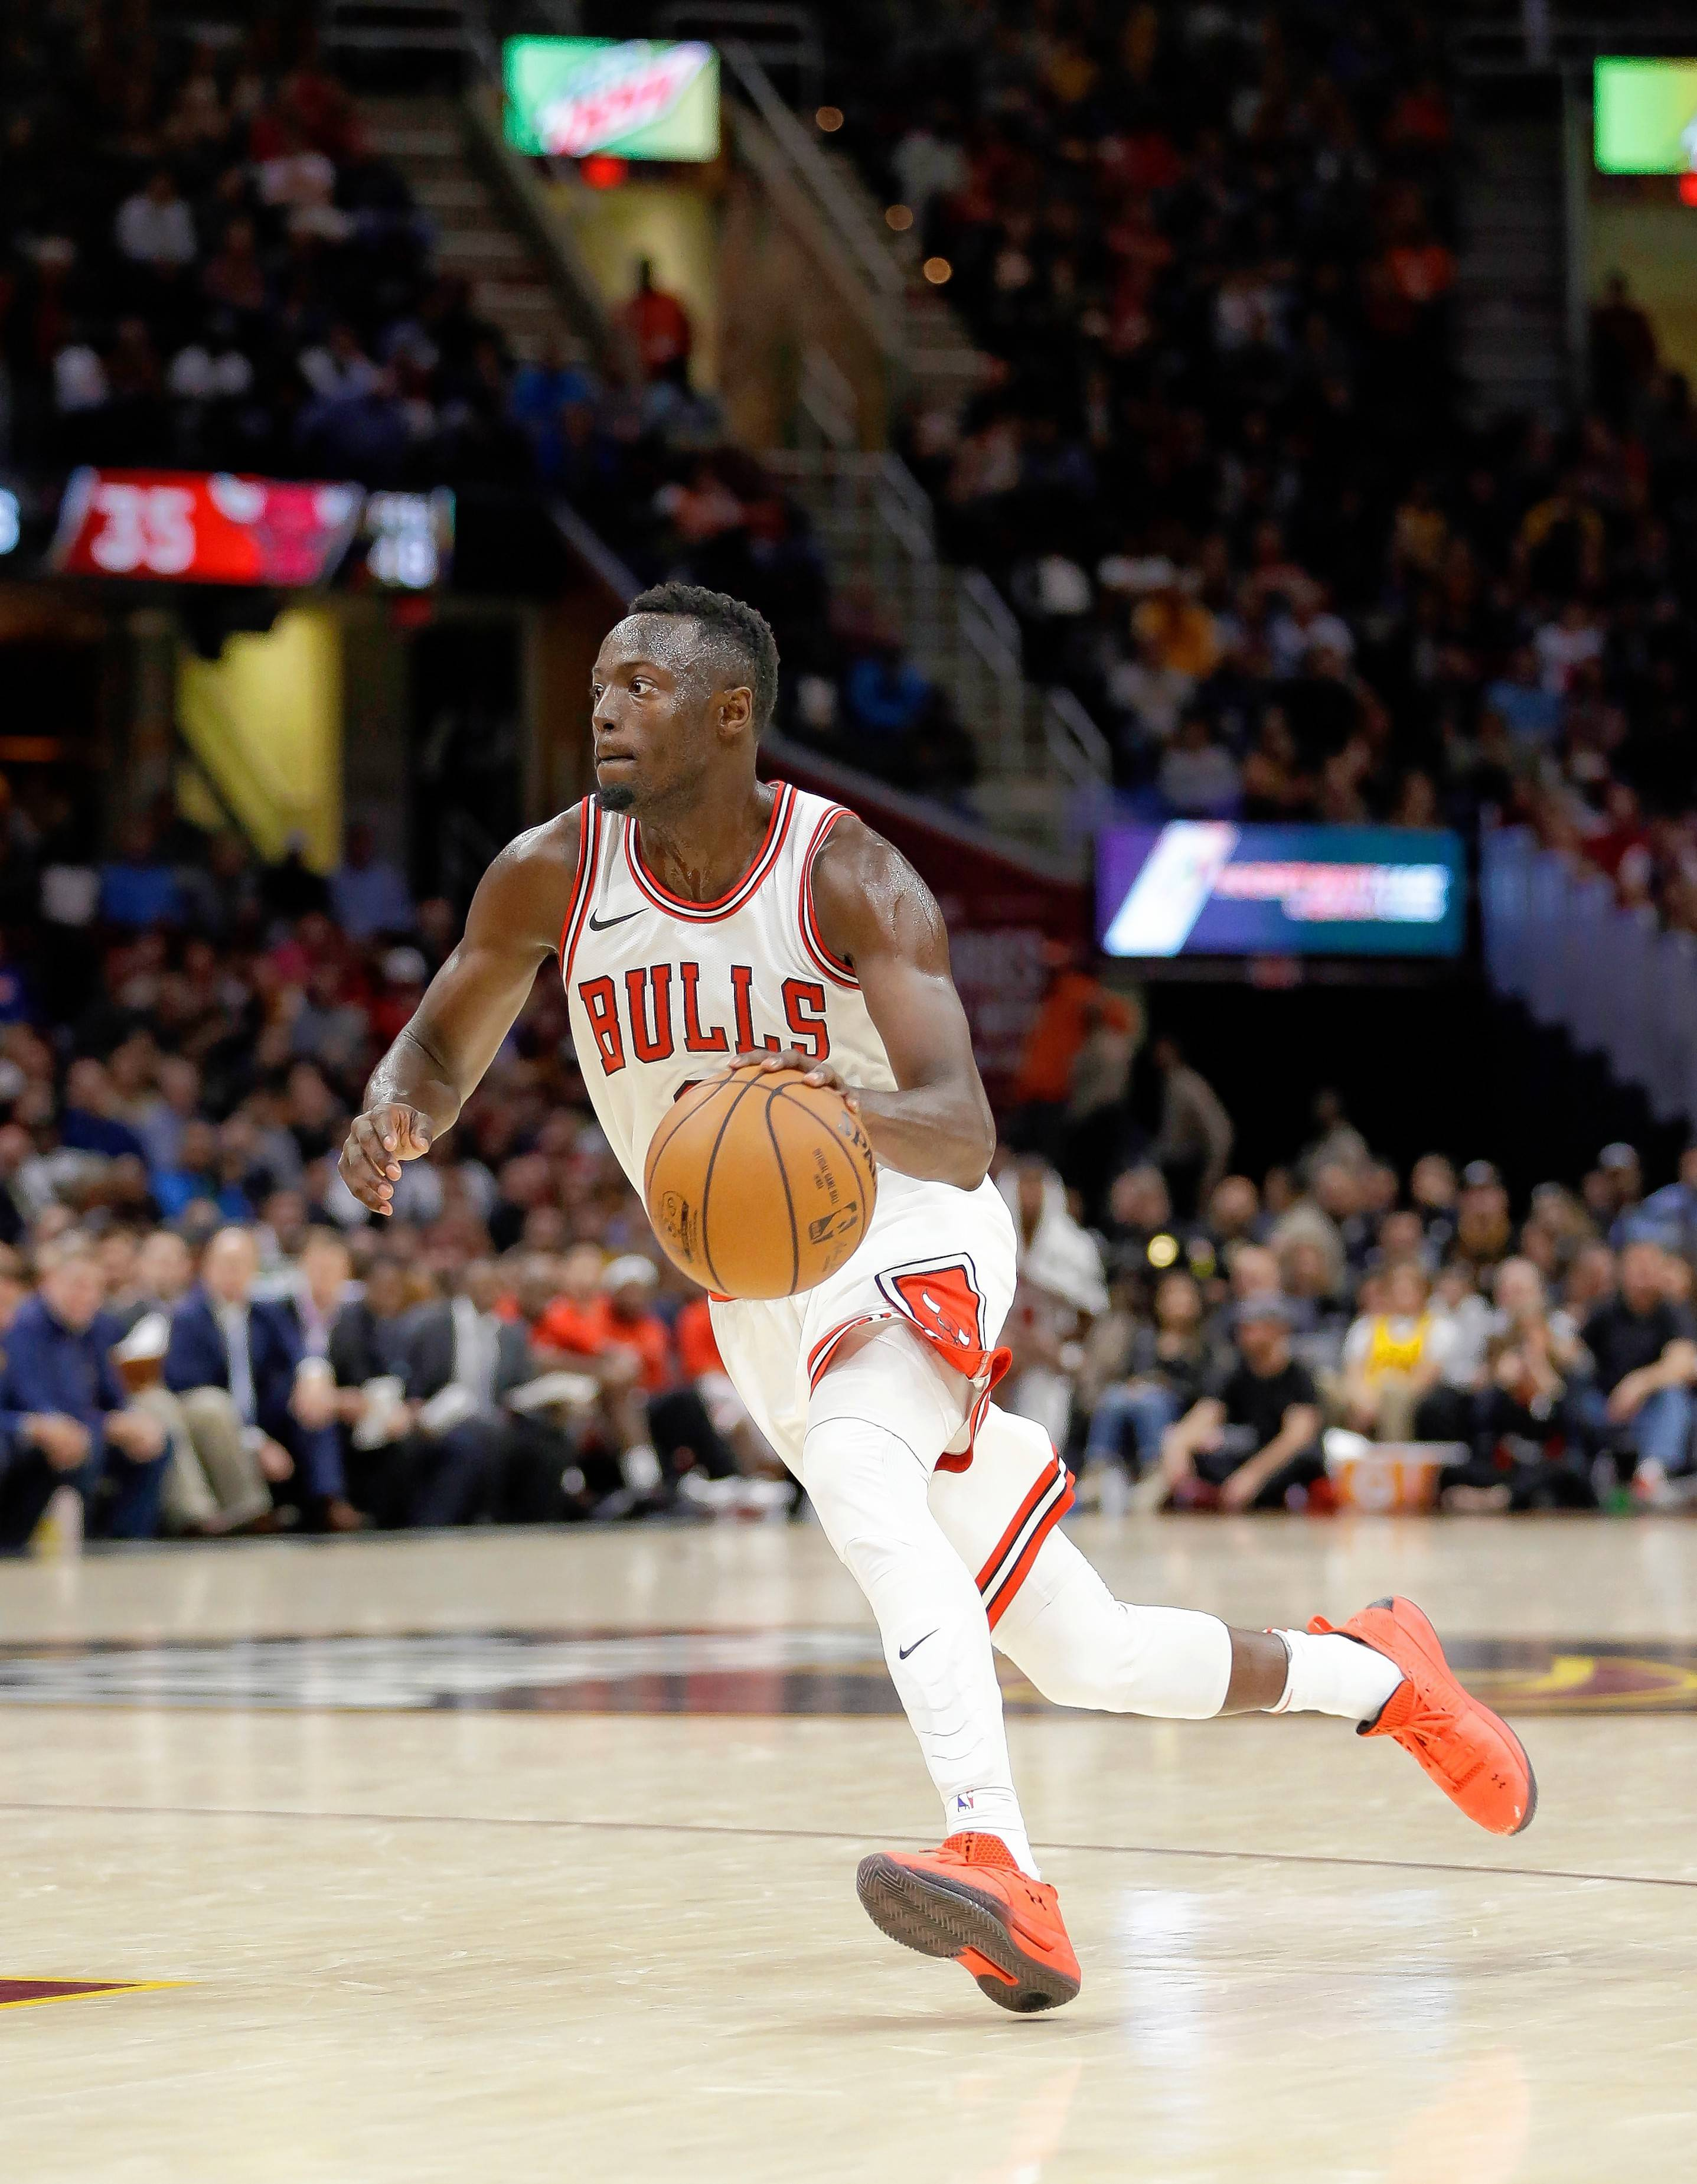 Chicago Bulls point guard Jerian Grant is average 6.6 assists per game to start the season, but he's hitting only 33.3 percent of his shots.